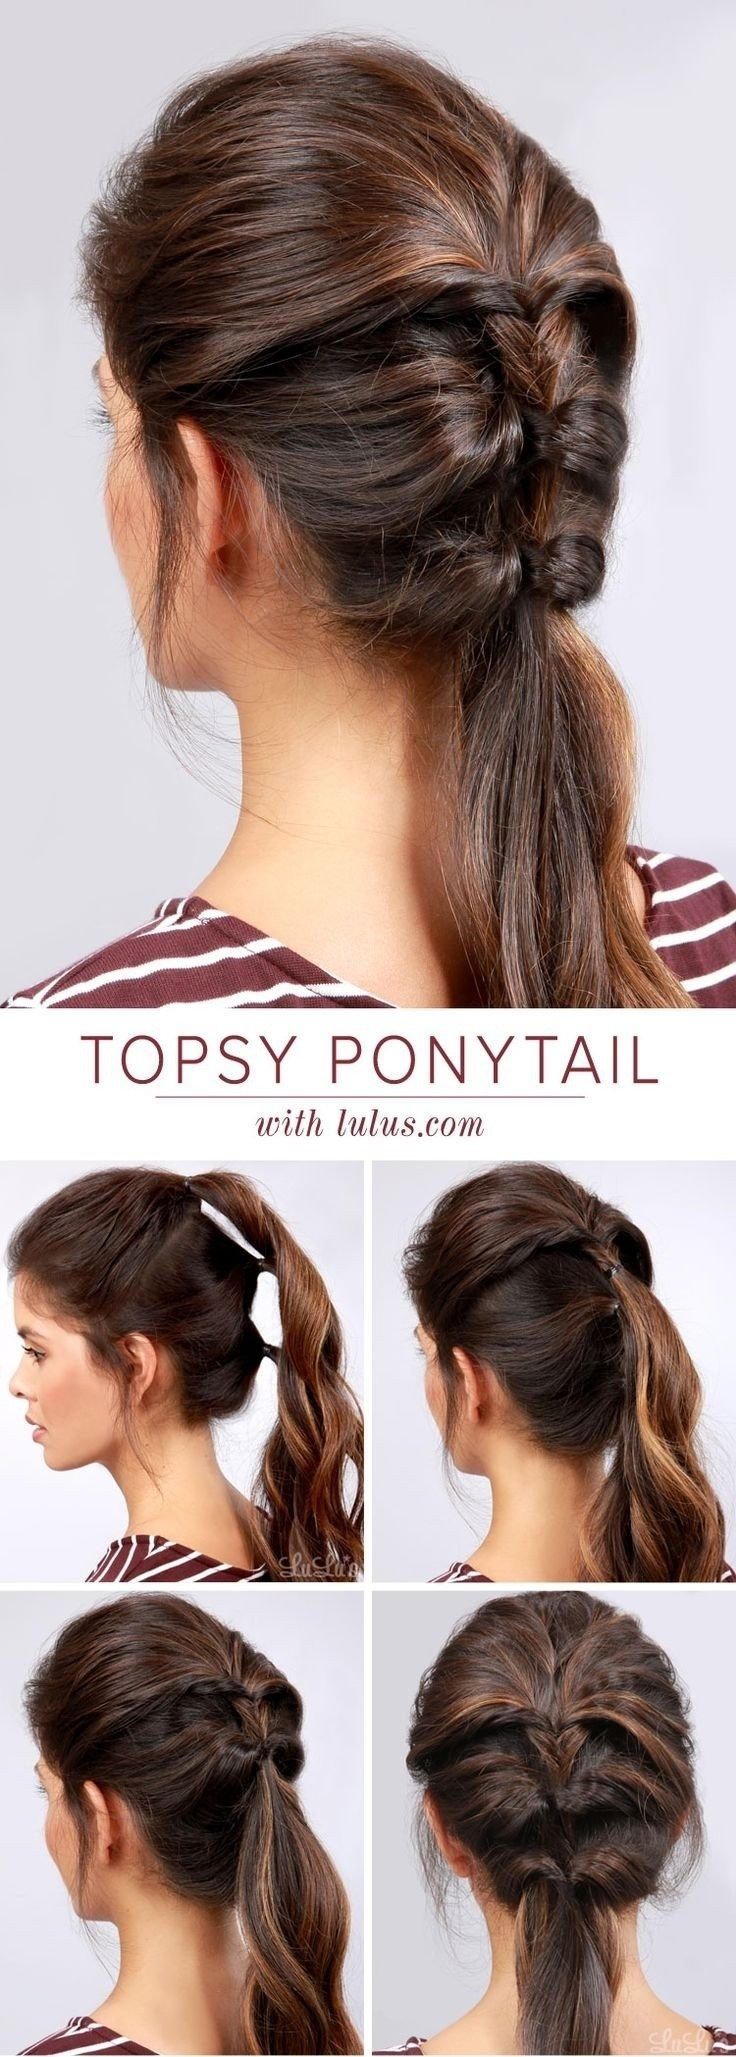 10 Unique Ponytail Ideas For Short Hair 20 ponytail hairstyles discover latest ponytail ideas now 2021